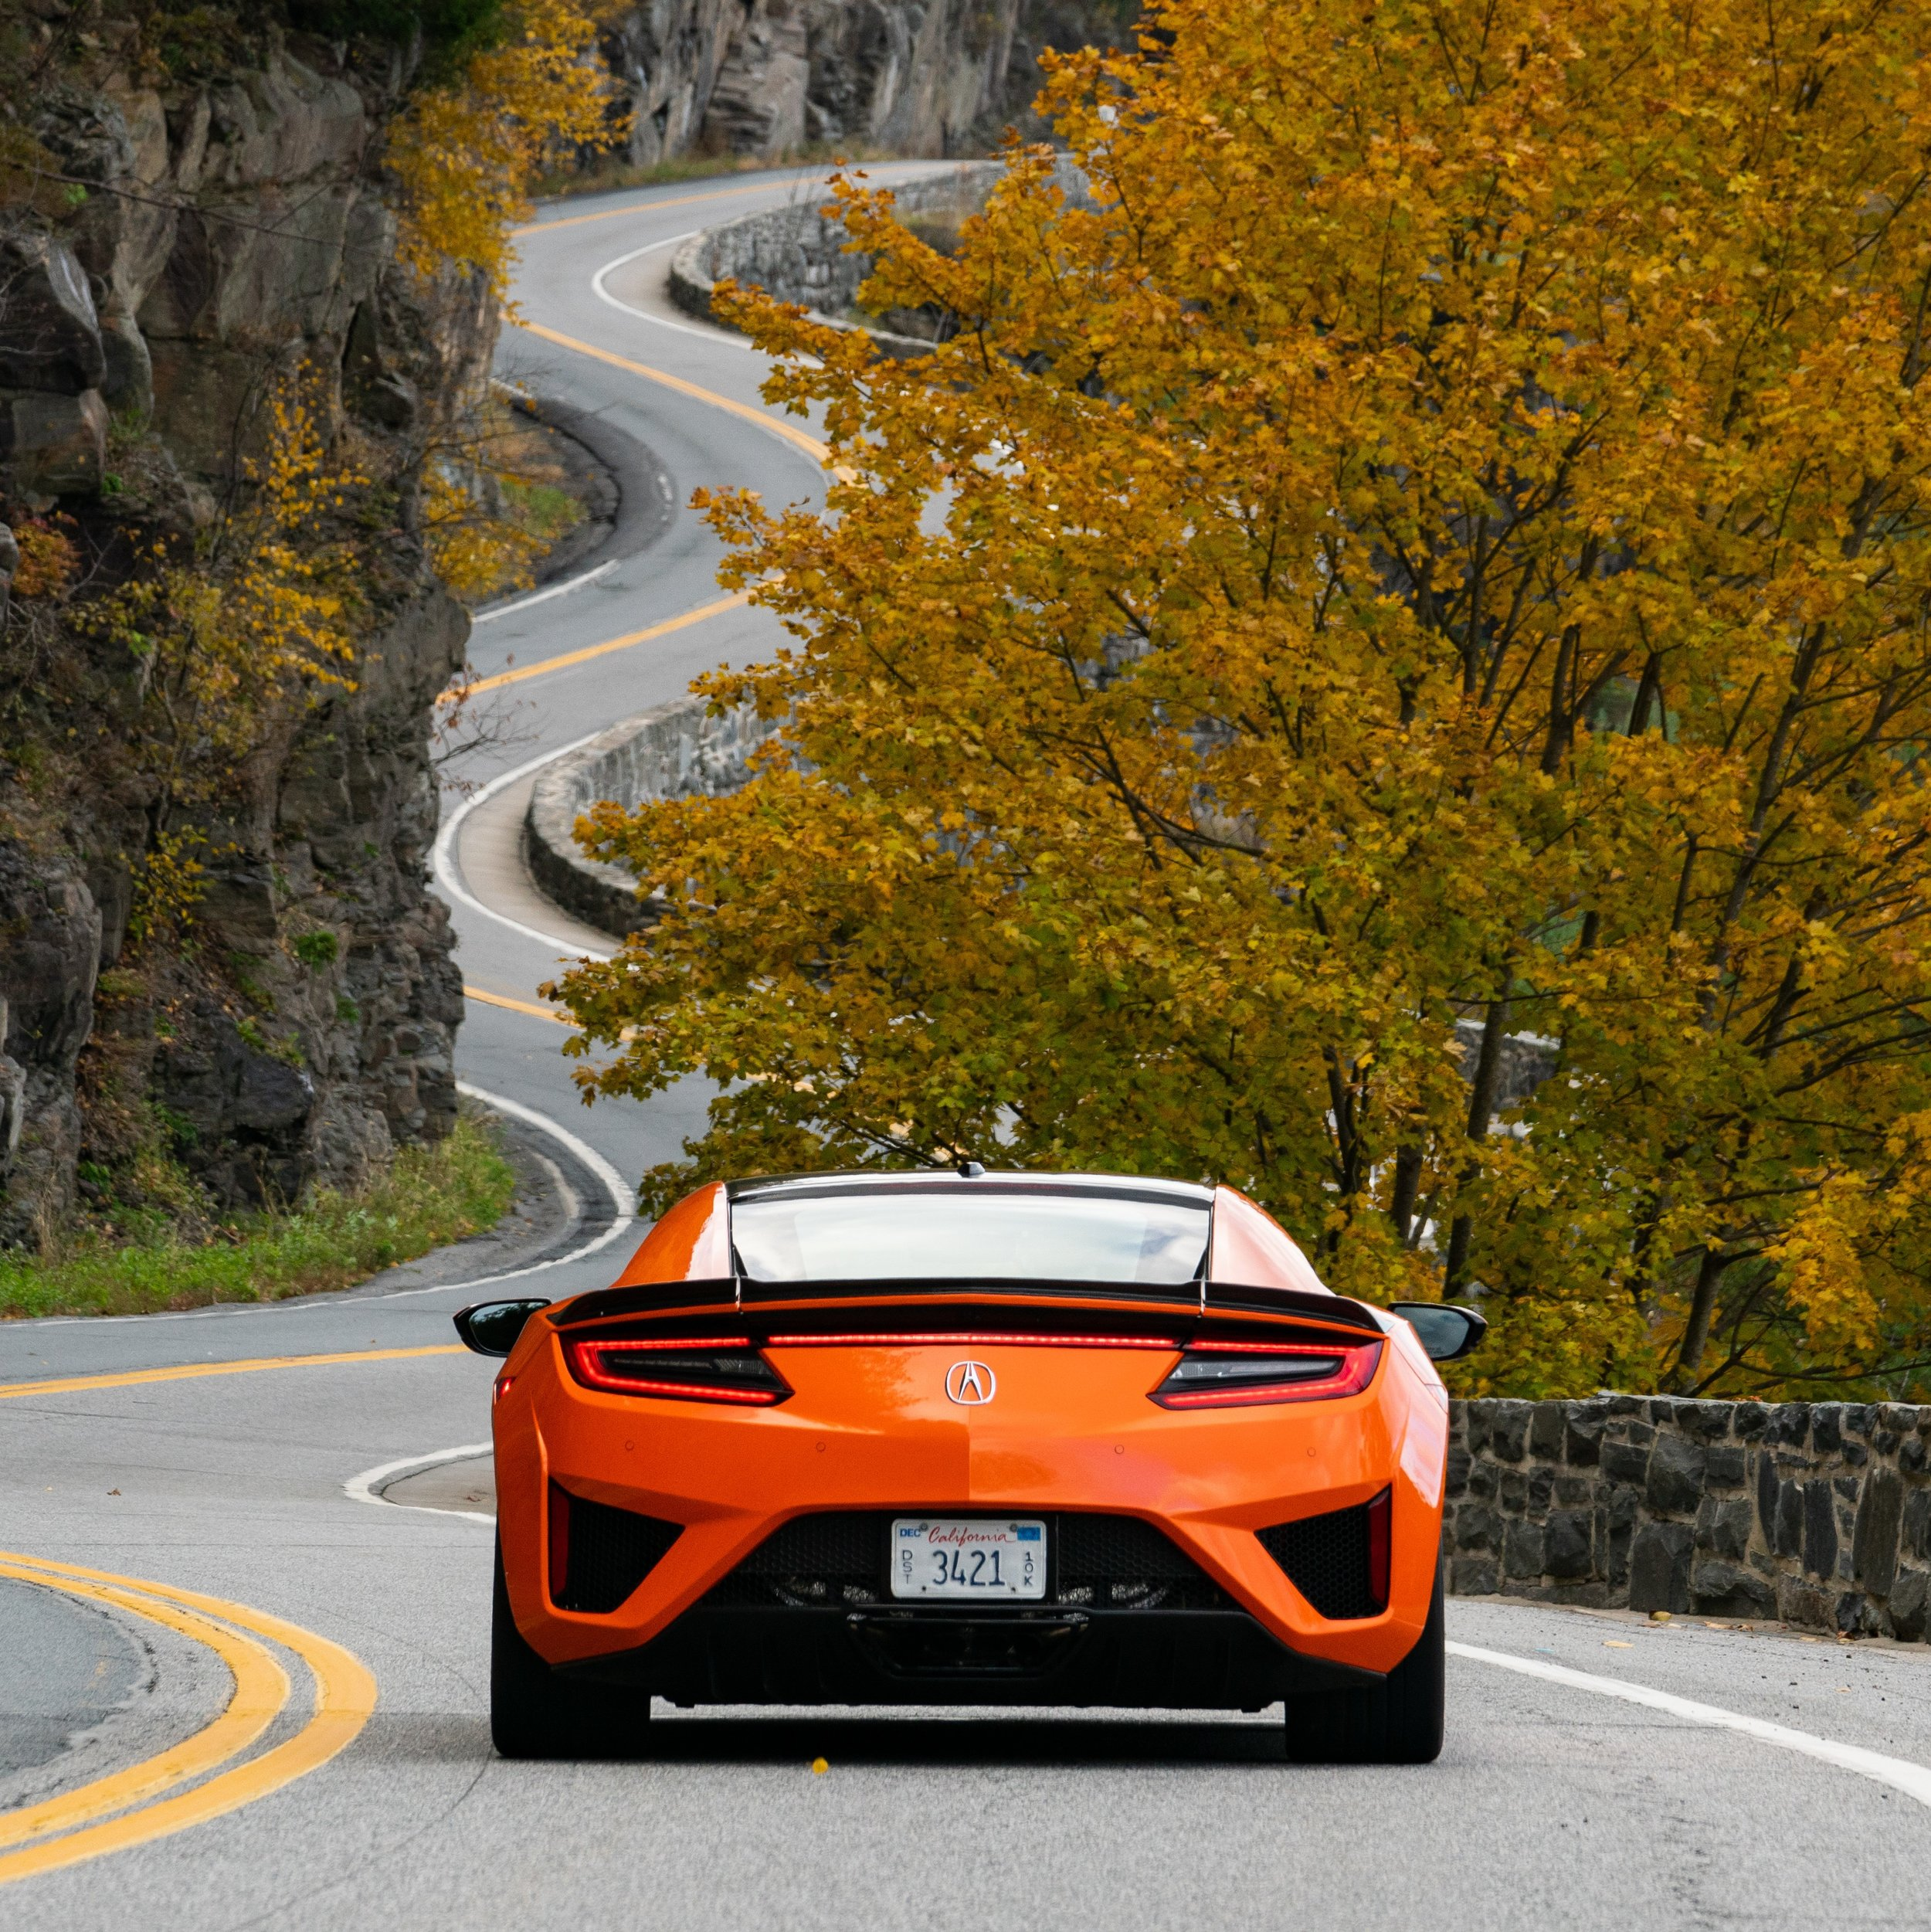 Acura NSX on Hawk's Nest Highway, shot for MullenLowe and Acura